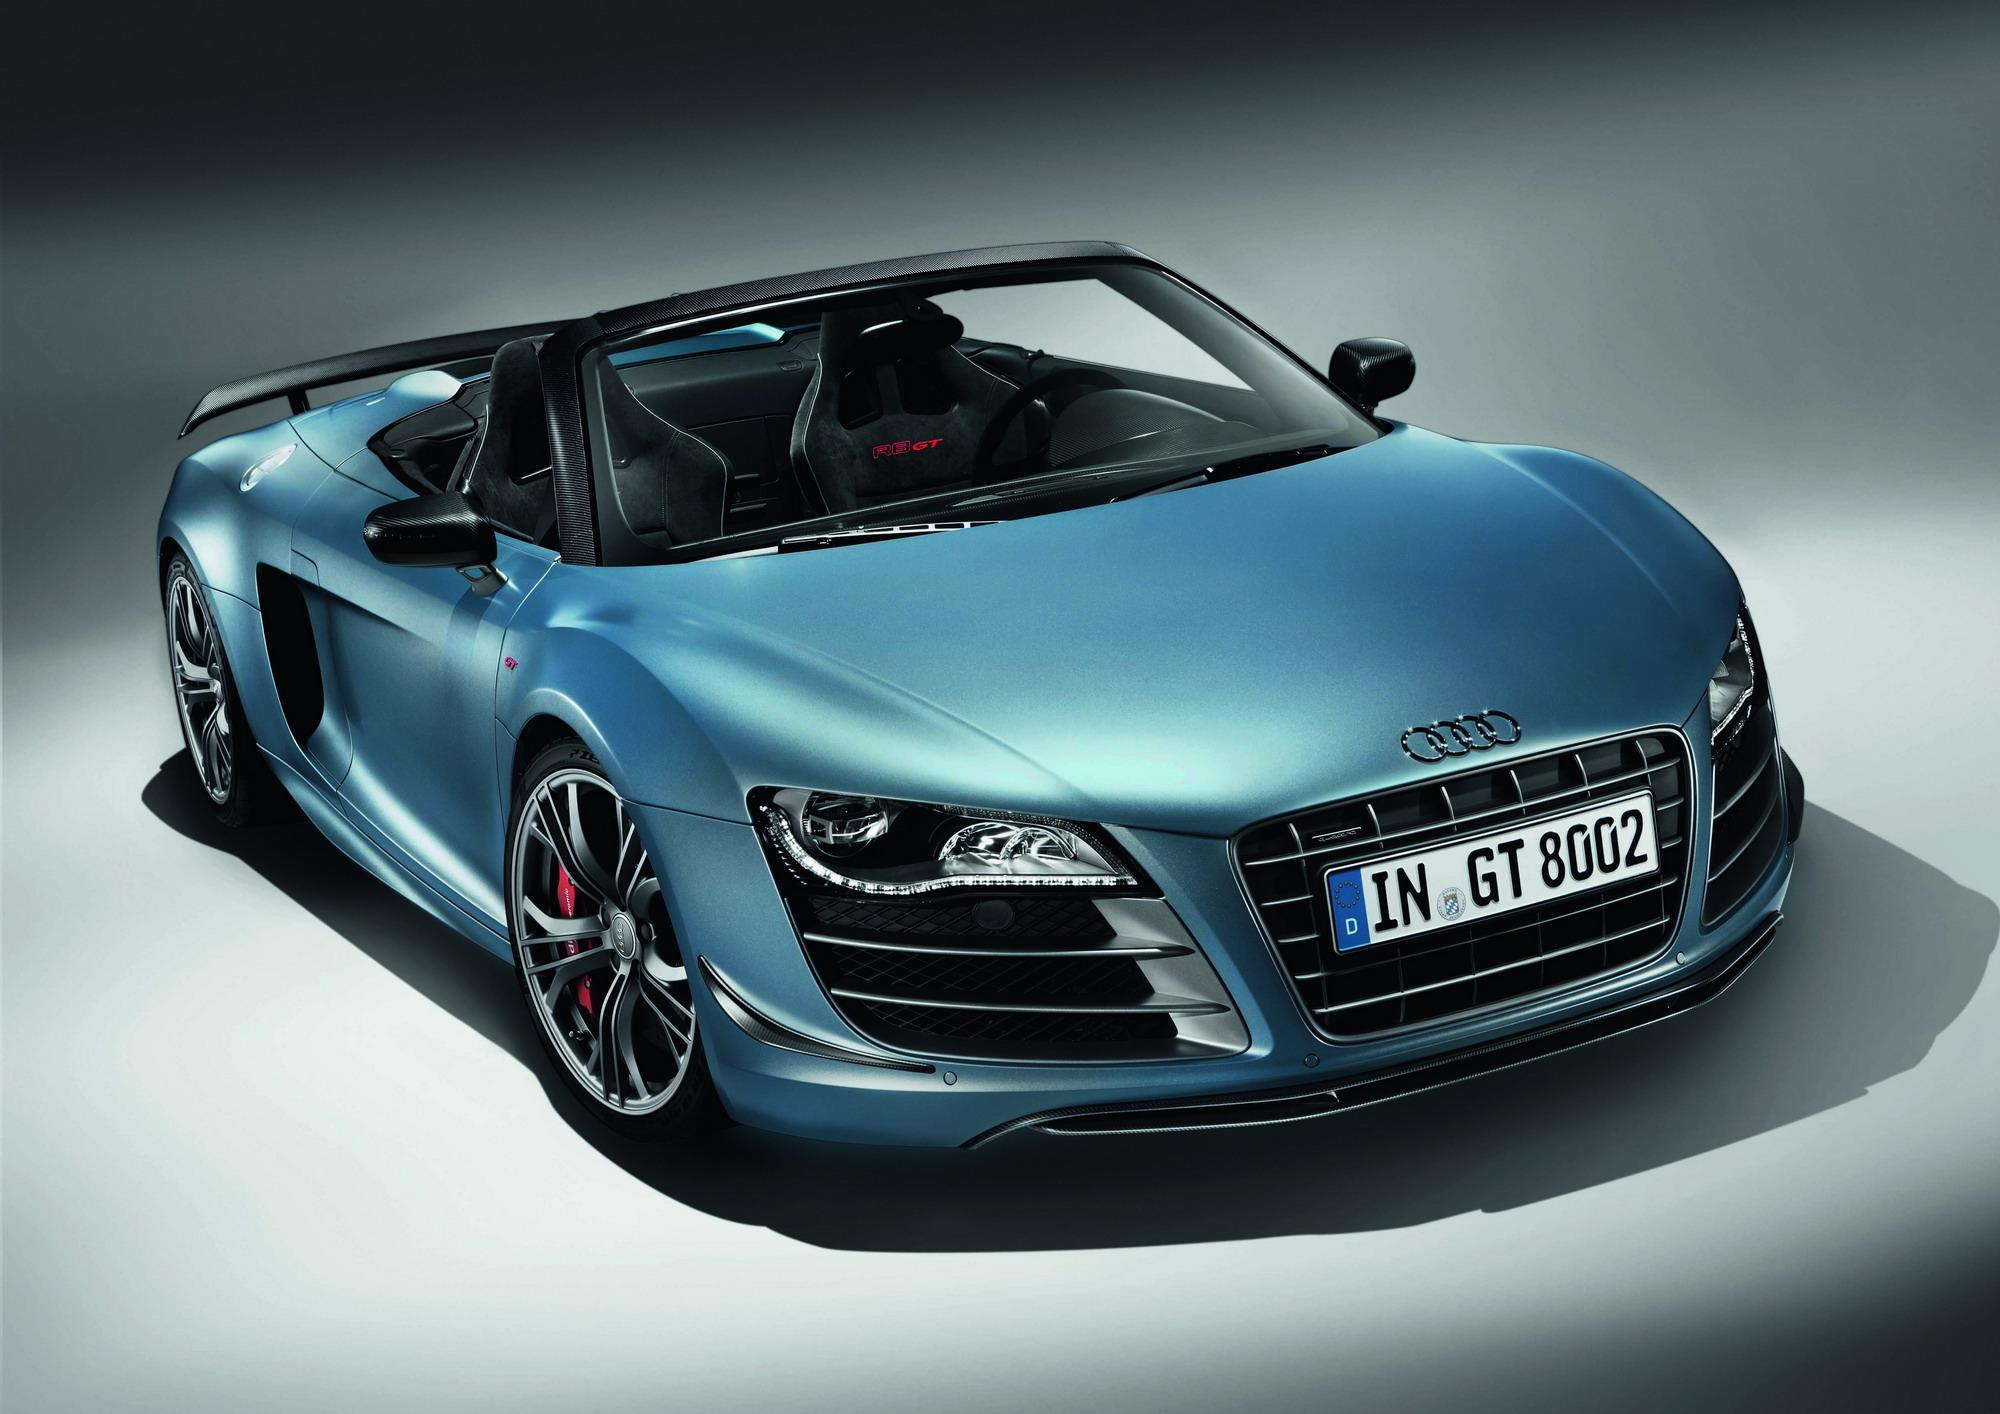 audi r8 gt convertible making its north american debut in la top speed. Black Bedroom Furniture Sets. Home Design Ideas